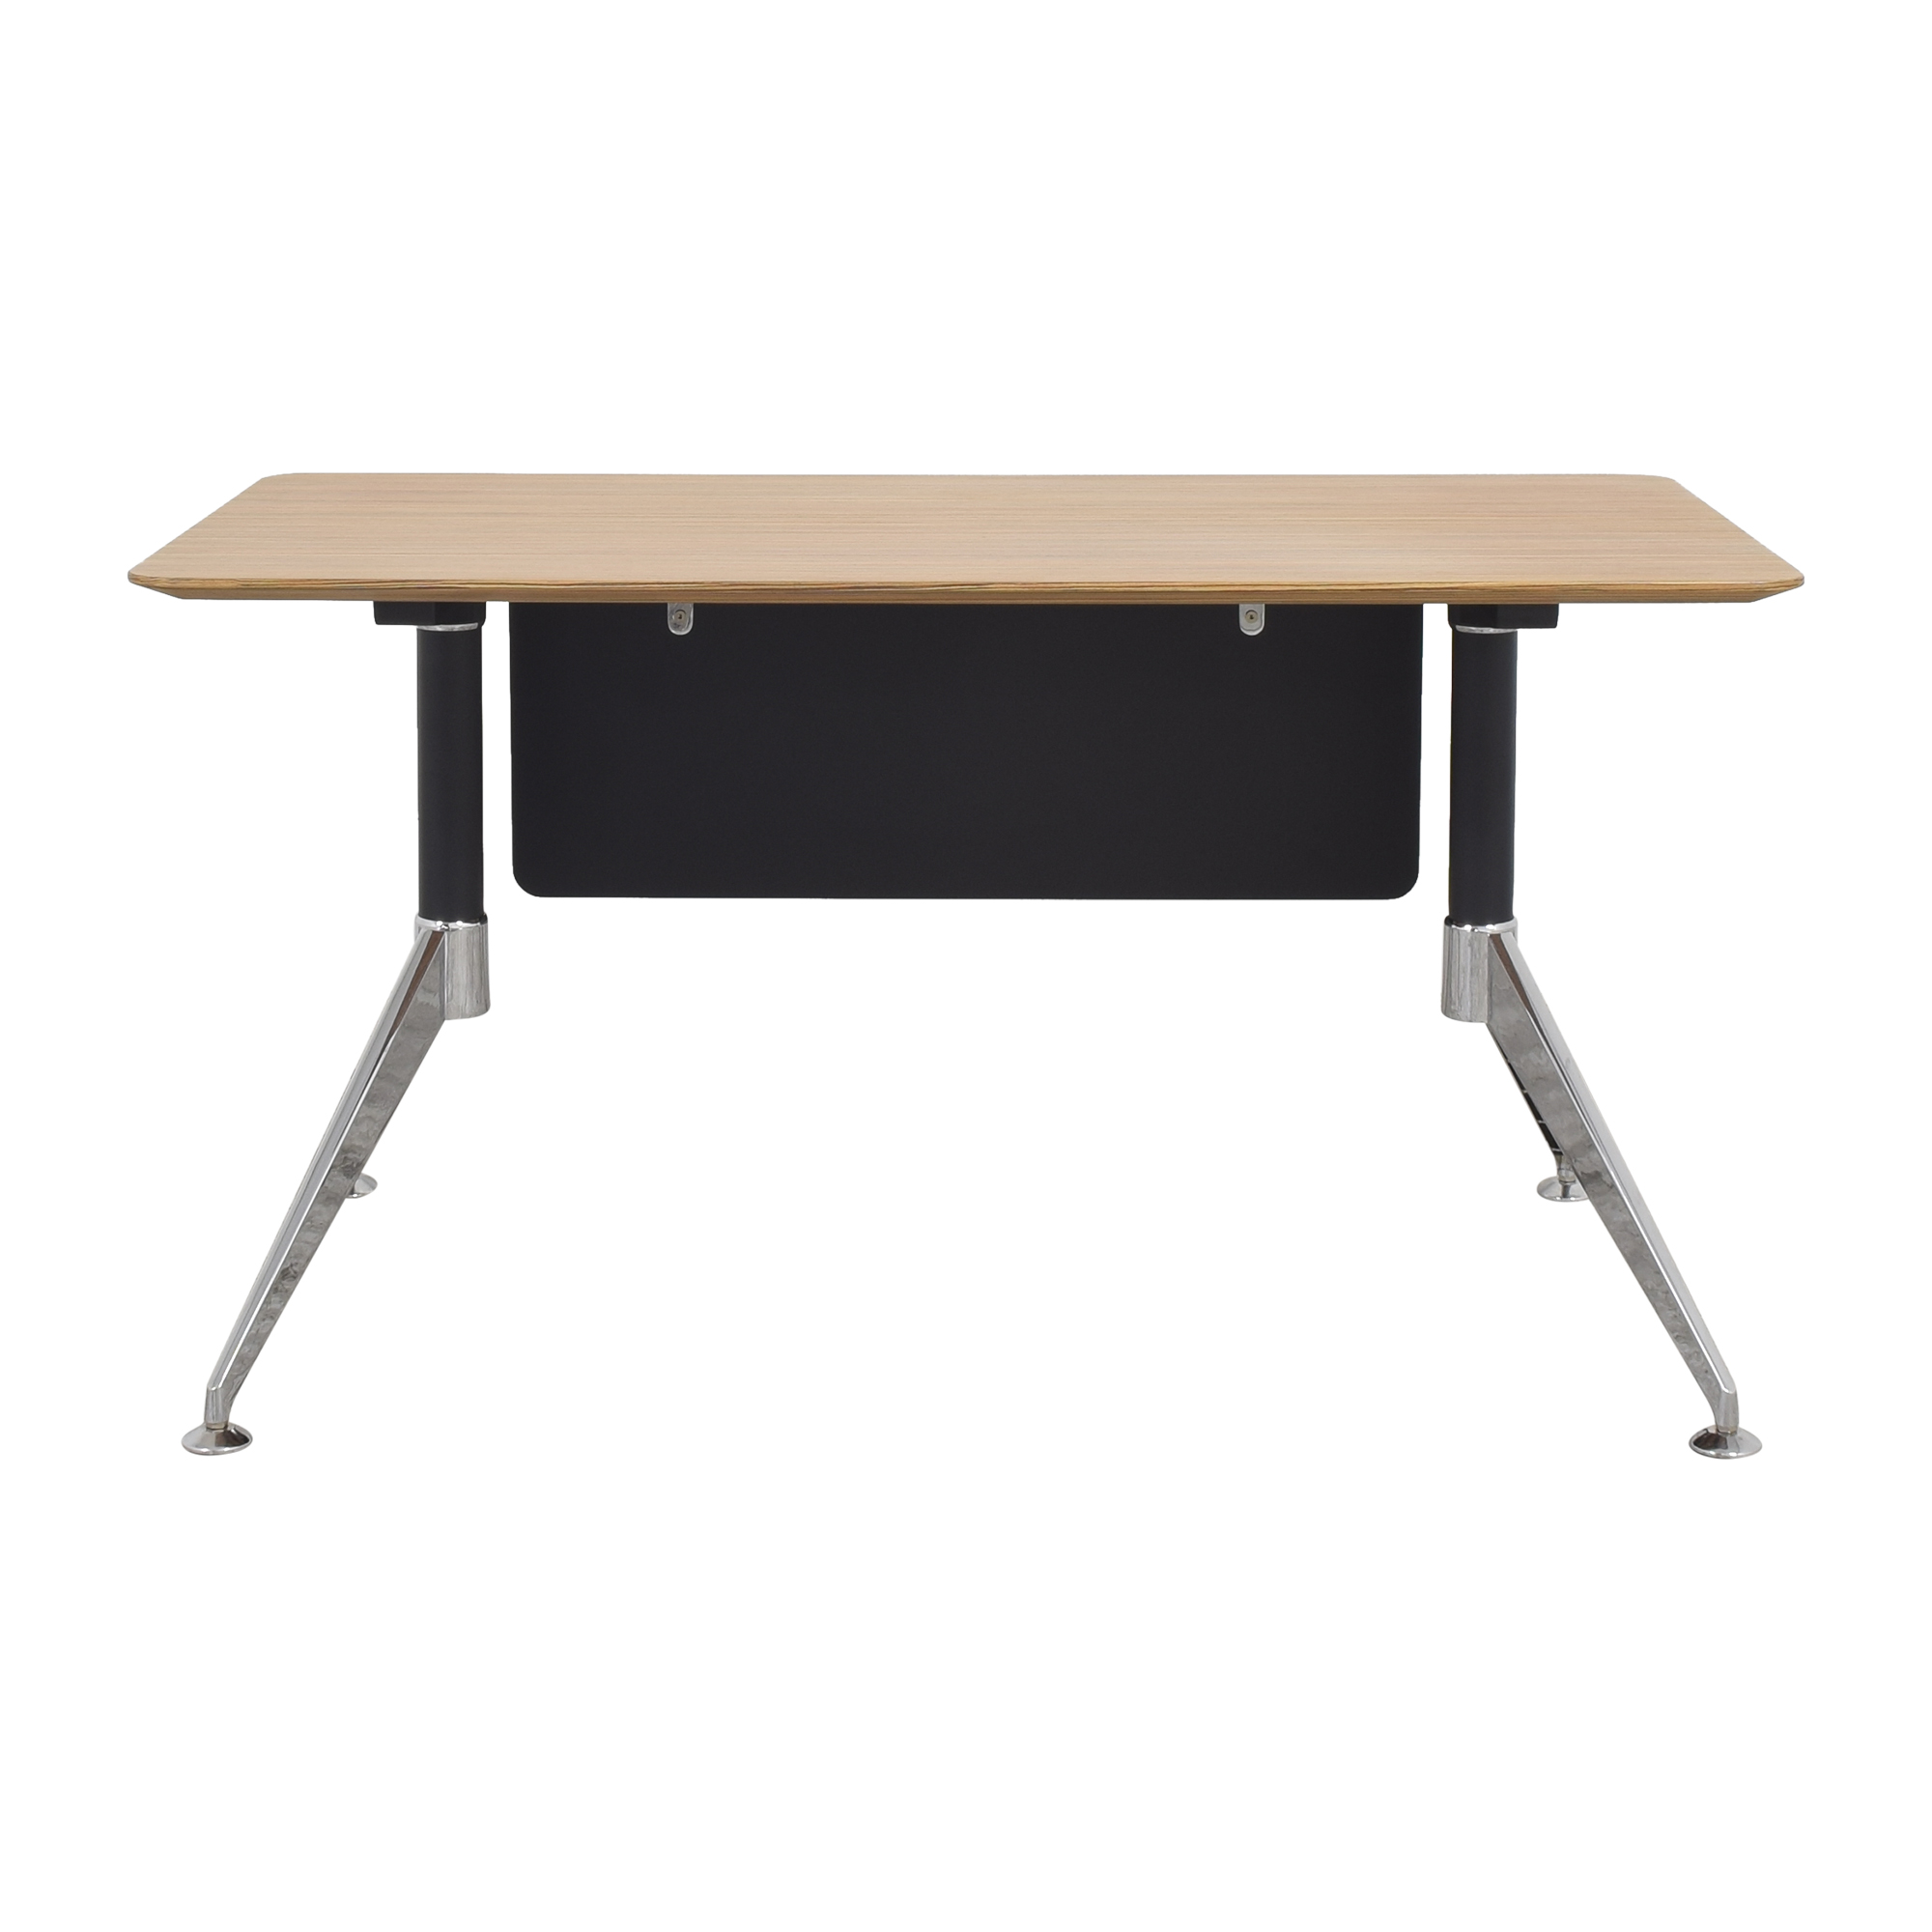 Jesper Office Jesper Office Zebrano Trondheim Desk for sale